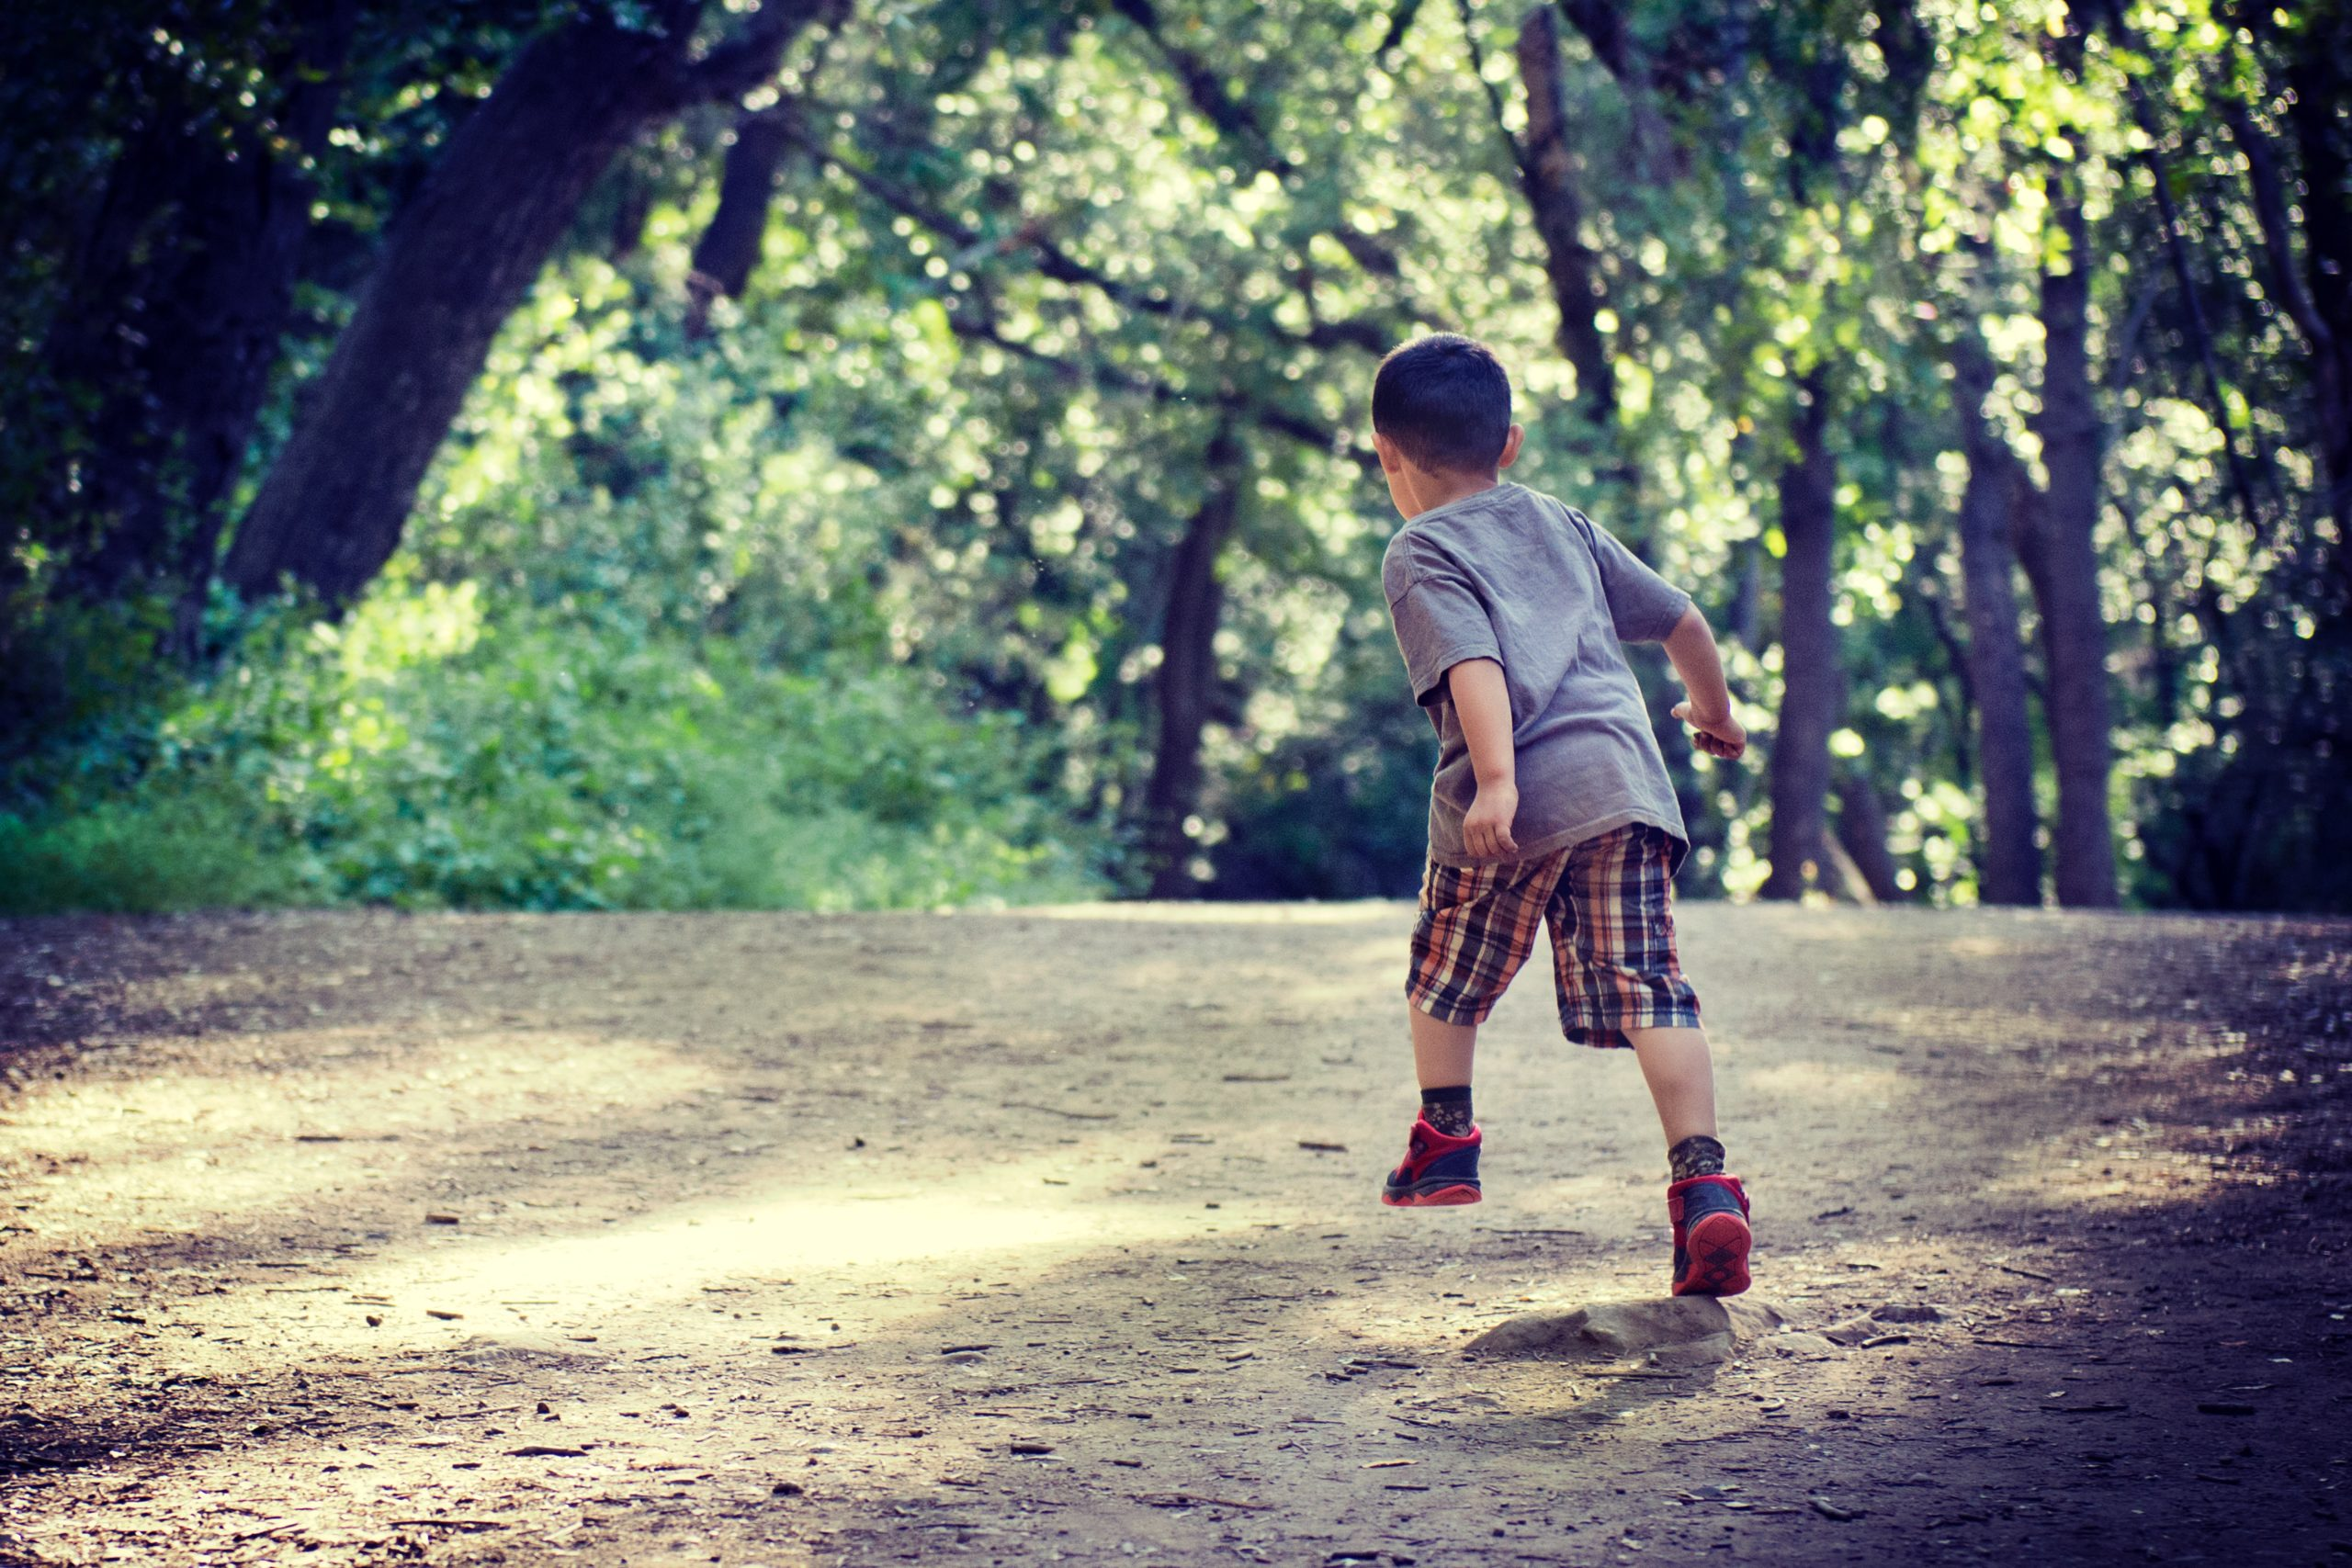 Family sports day: a child playing in the woods